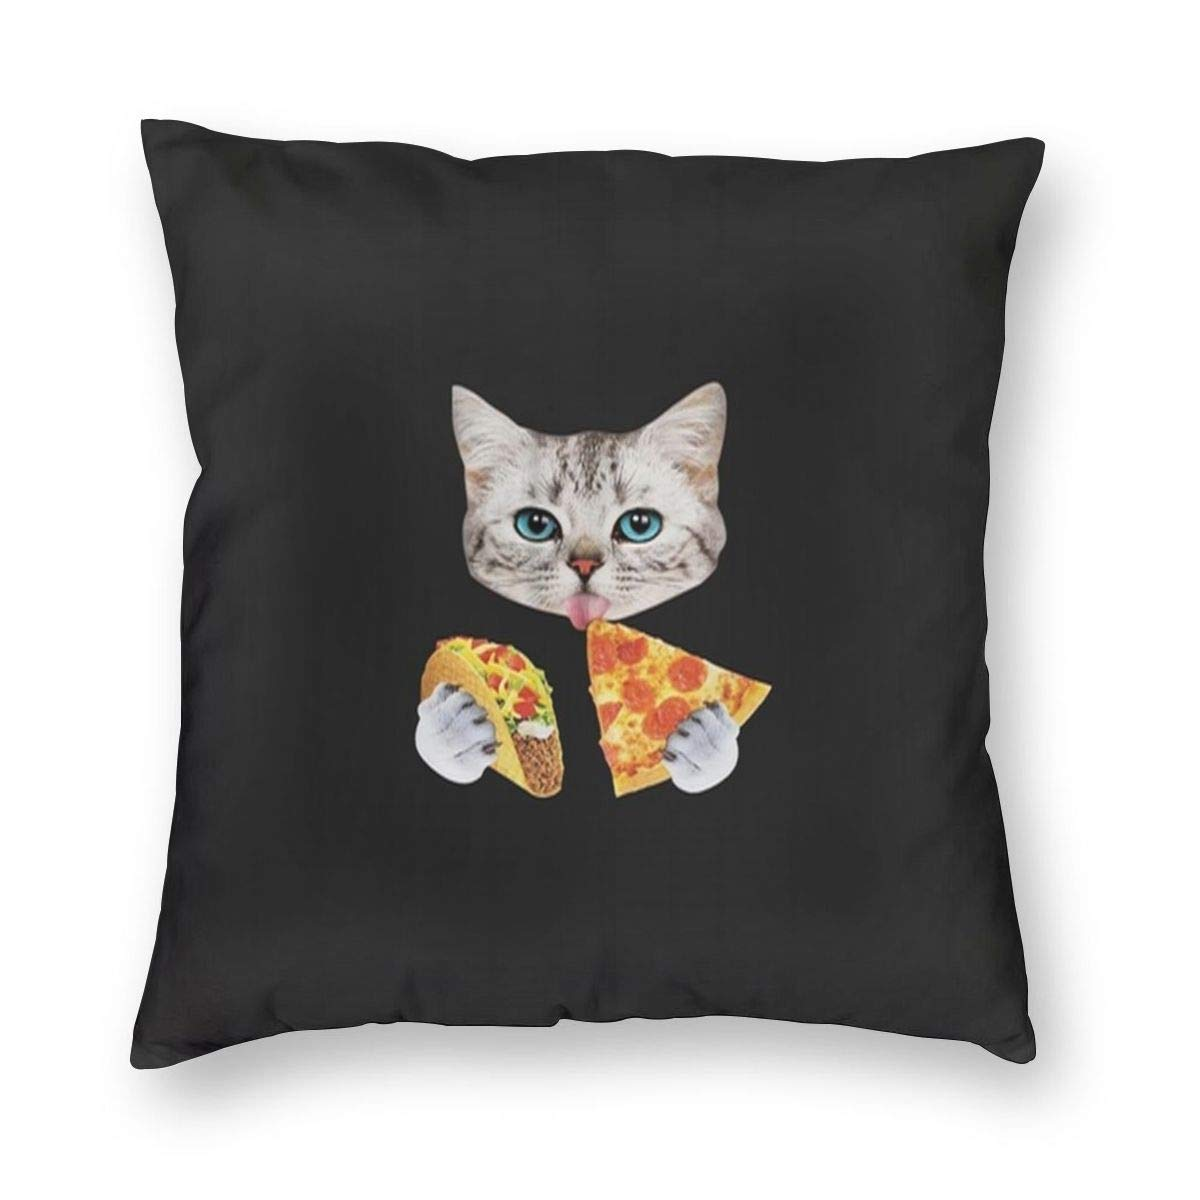 YongColer Decorative Throw Pillow Case Indoor Outdoor Cushion Cover Pillowcase for Sofa,Cat with Taco and Pizza Black